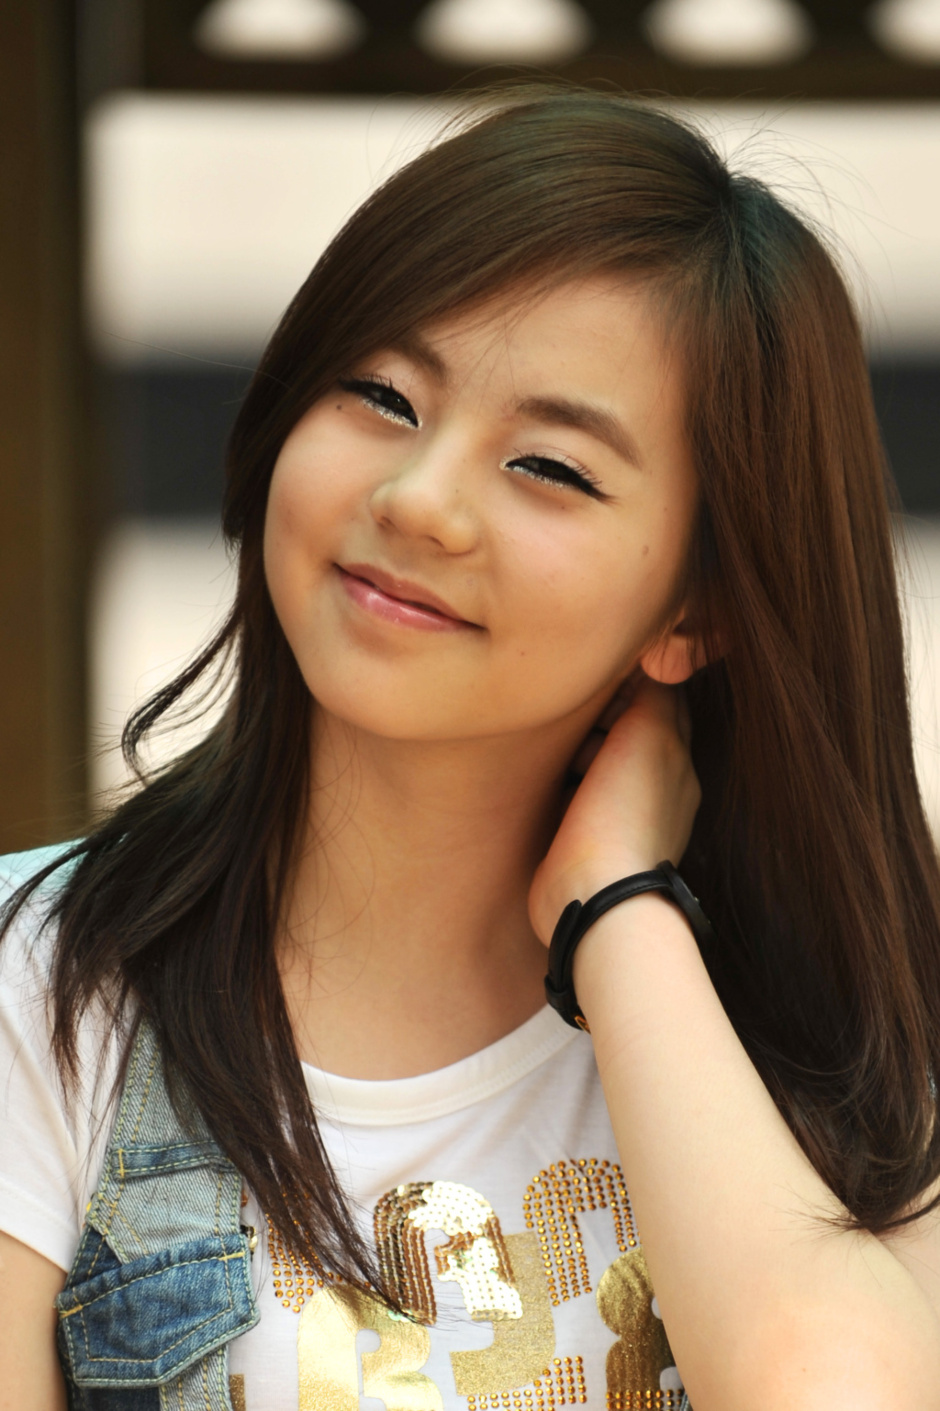 http://wondergirls.files.wordpress.com/2008/07/nocutnews_sohee_7.jpg